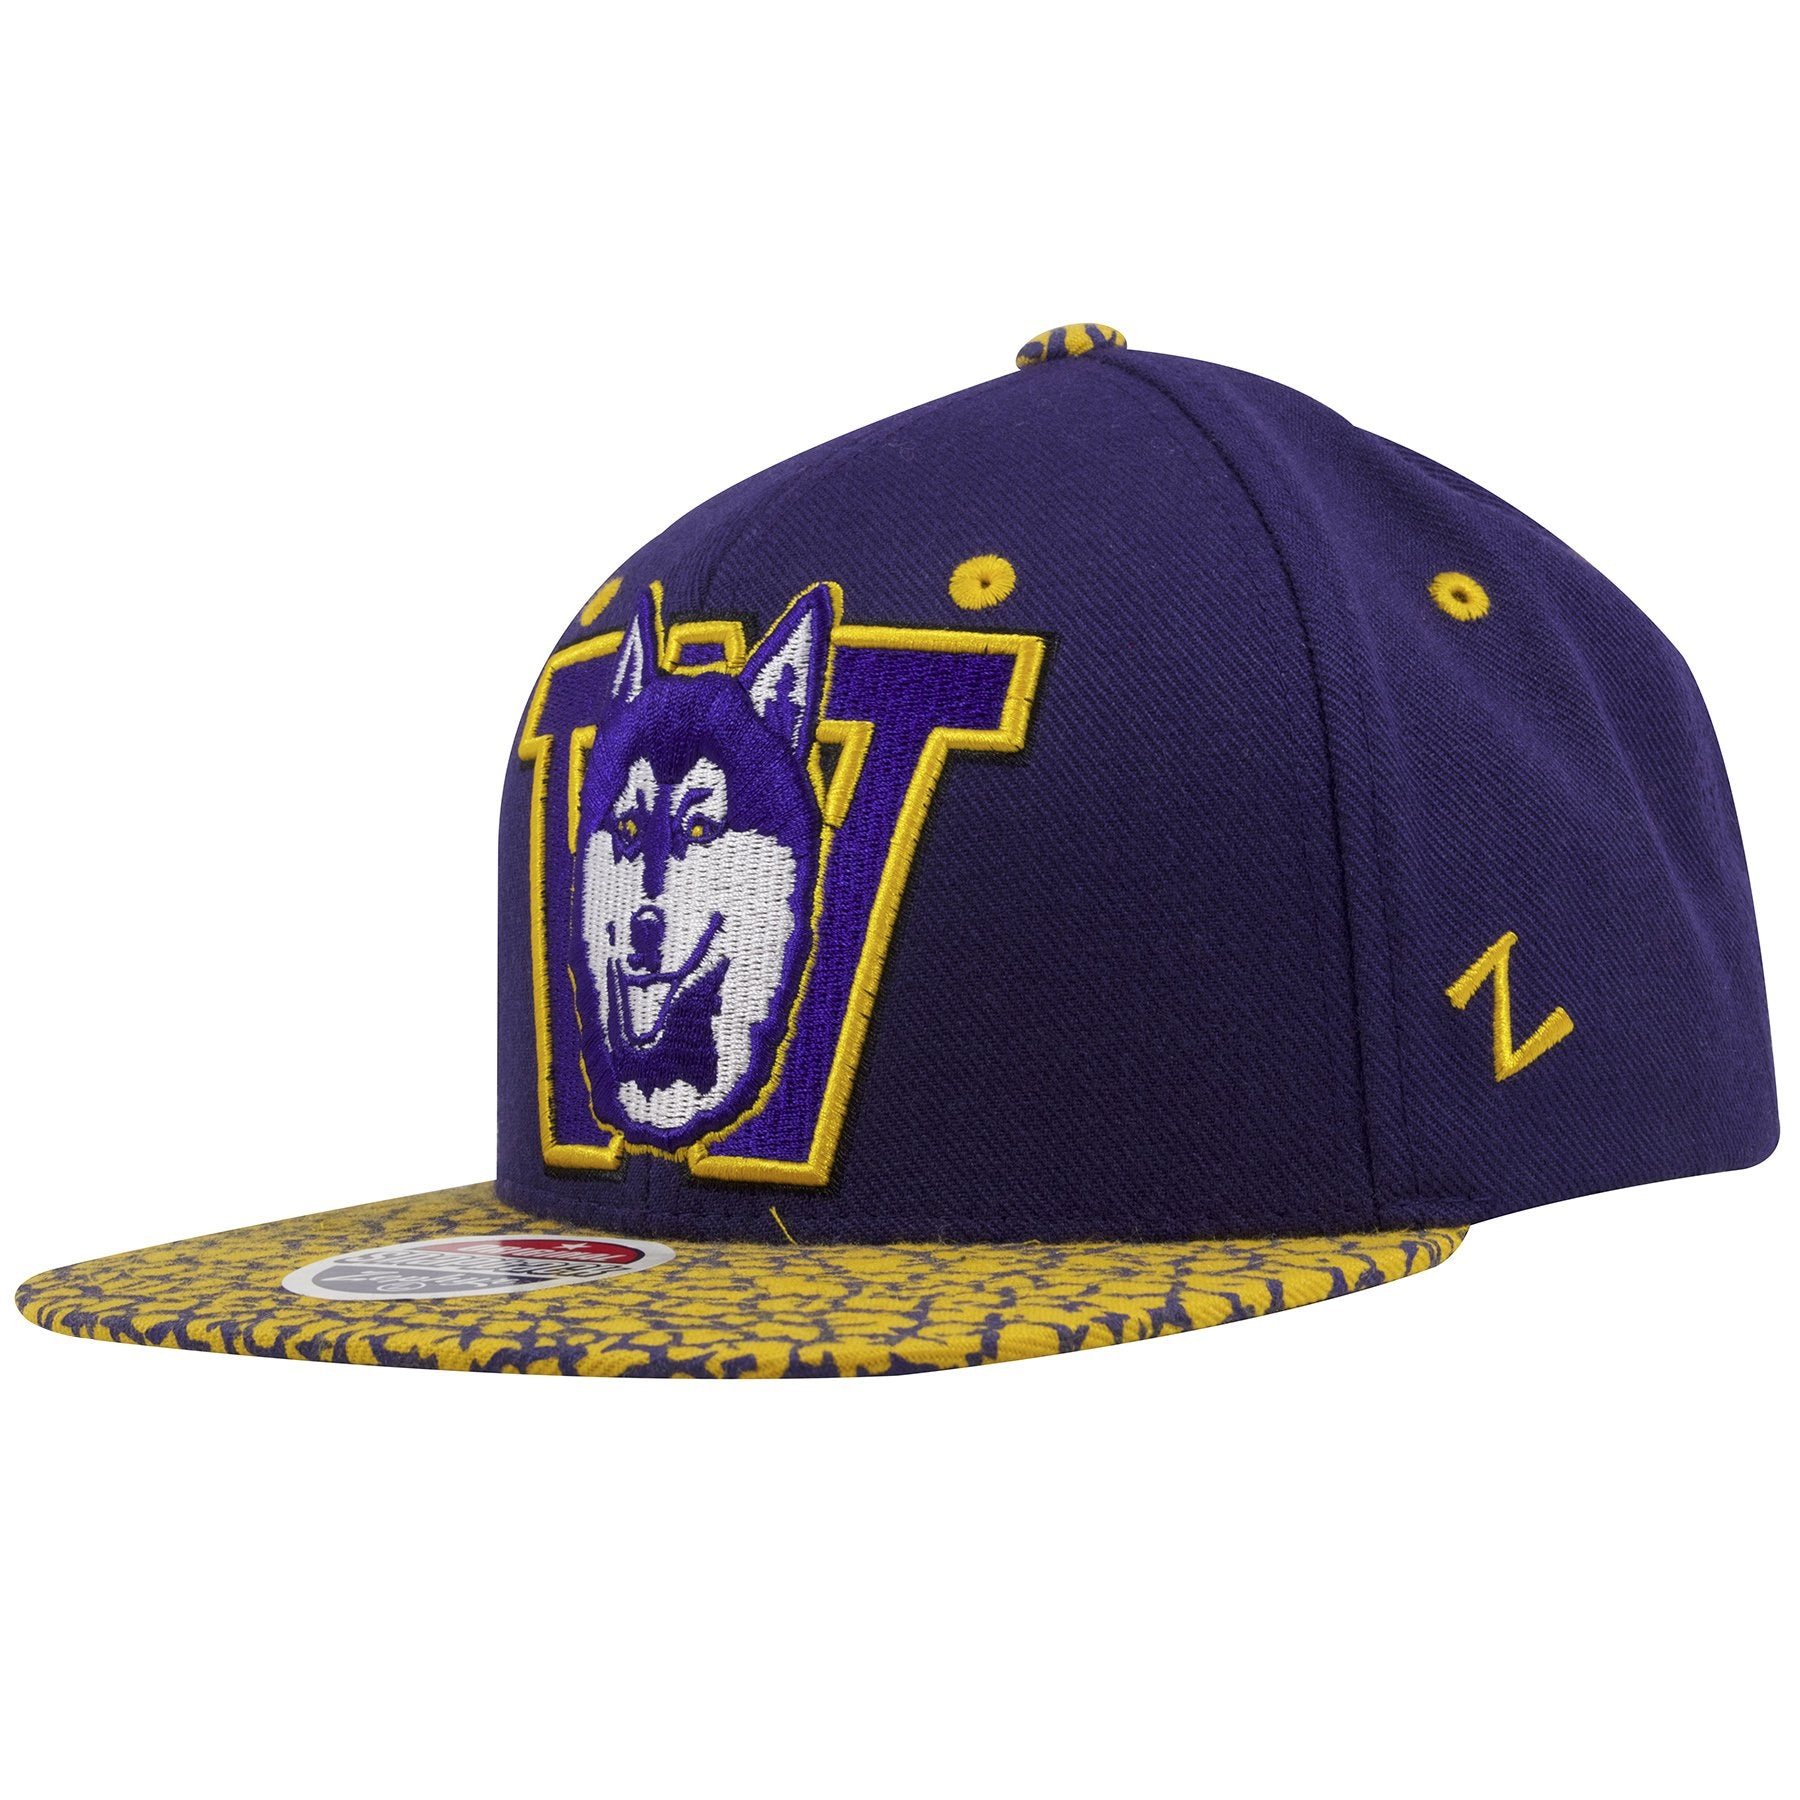 official photos 3f8d1 727c3 ... on the left side of the university of washington huskies snapback hat  is the zephyr logo ...